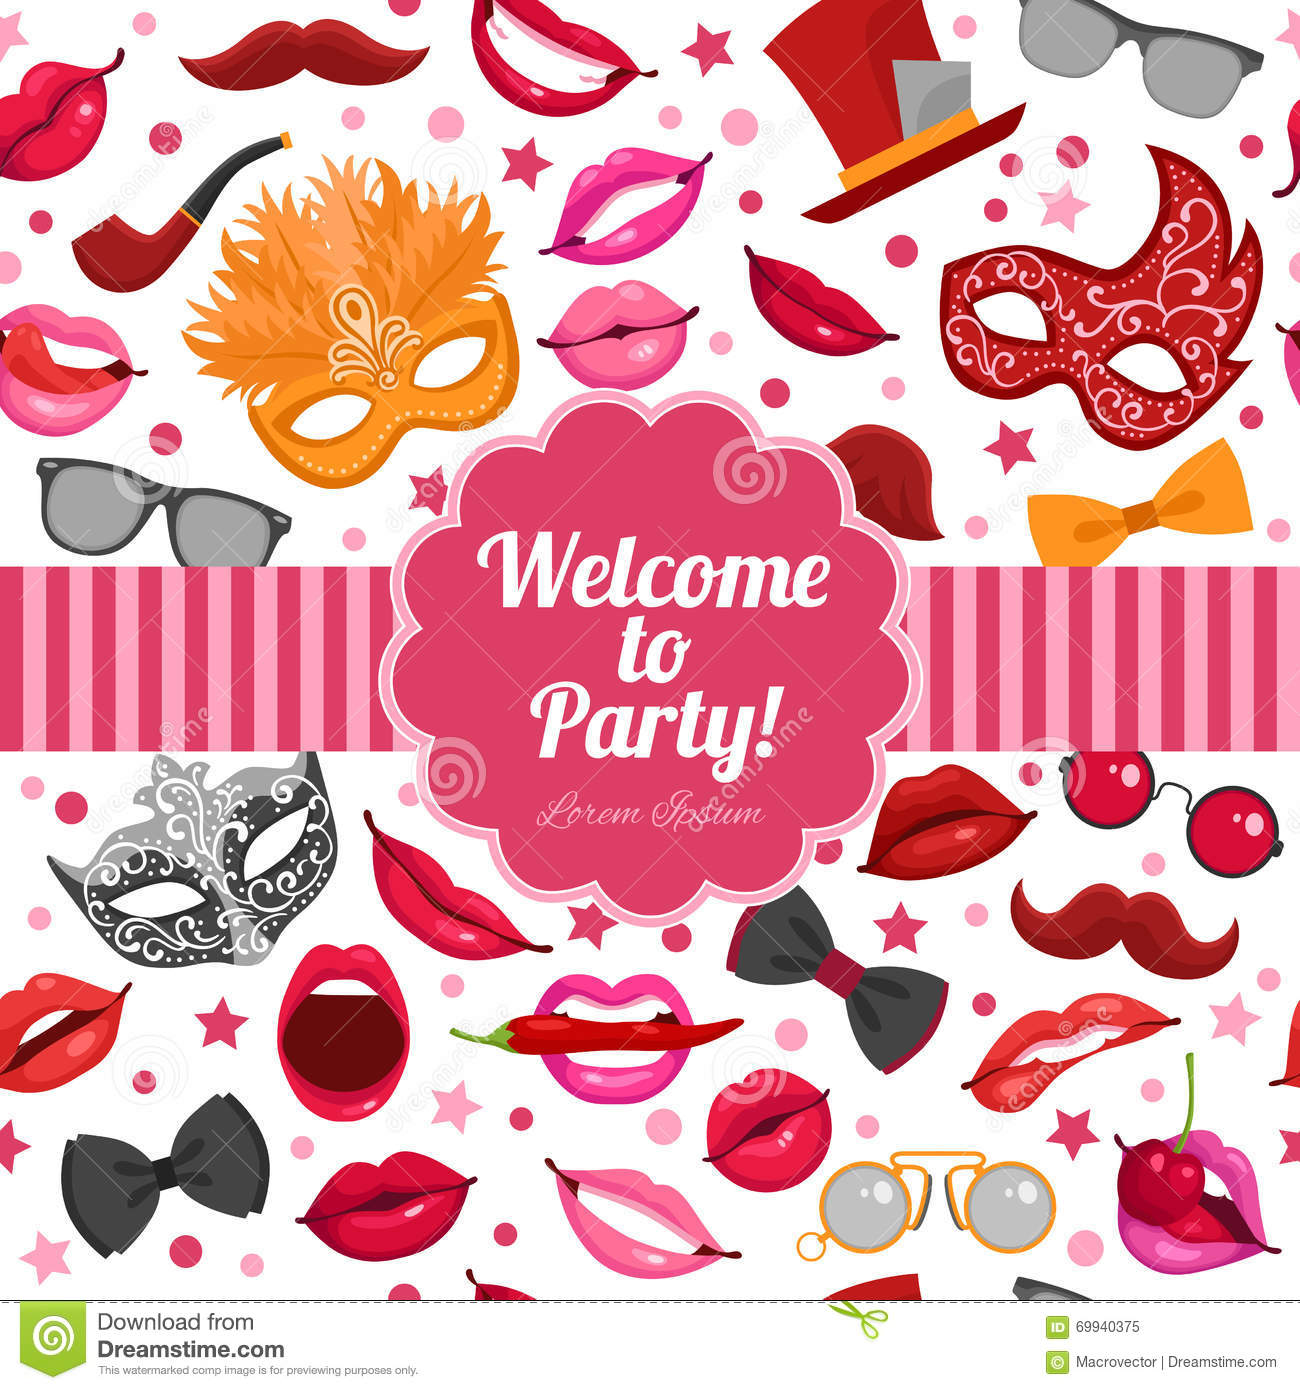 Carnival Party Invitation Festive Flat Poster Stock Vector - Image ...